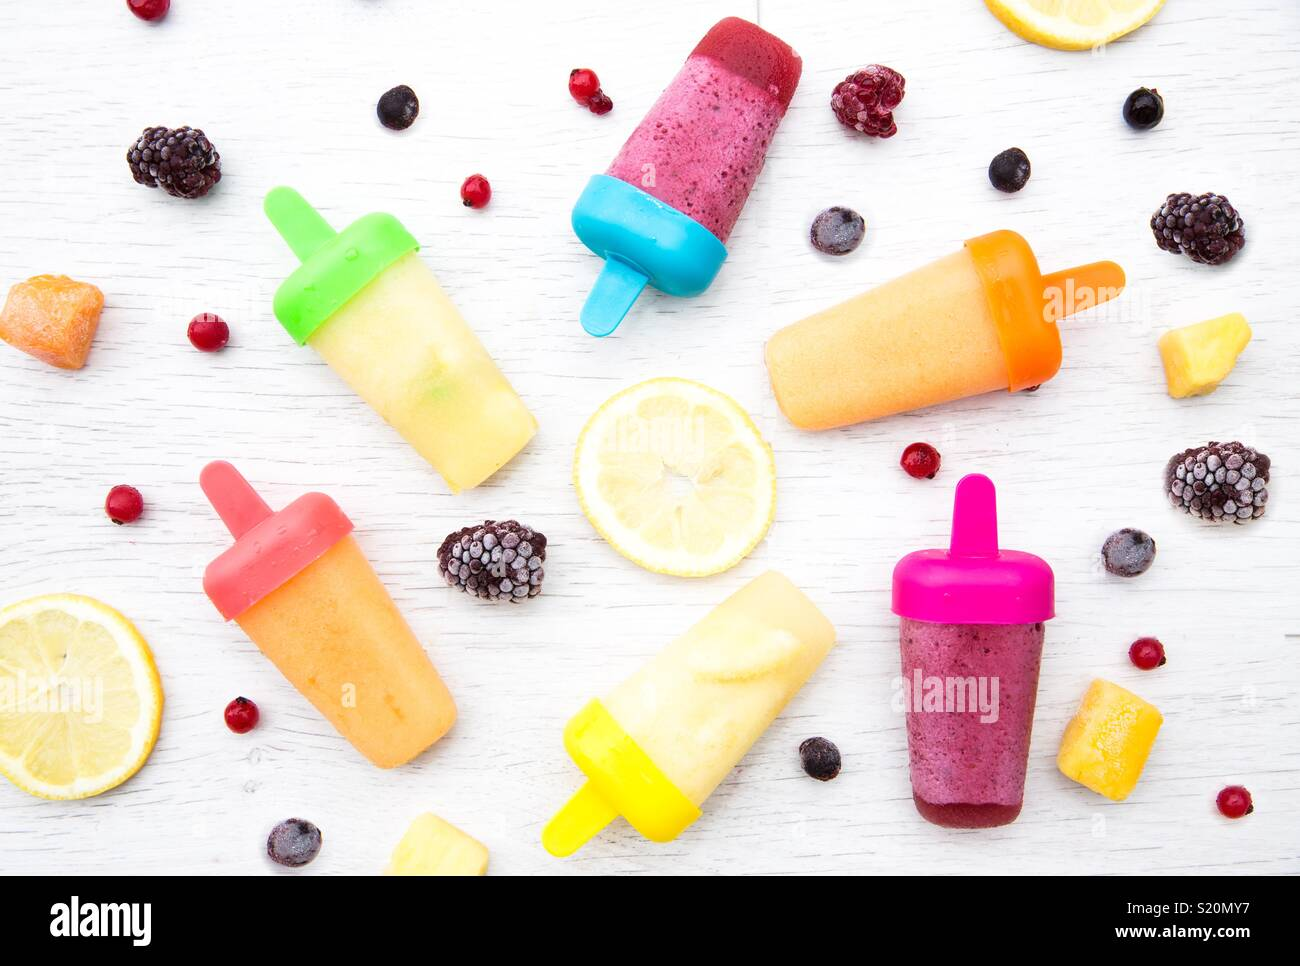 A flat lay food image of colourful fruit flavoured ice lollipops